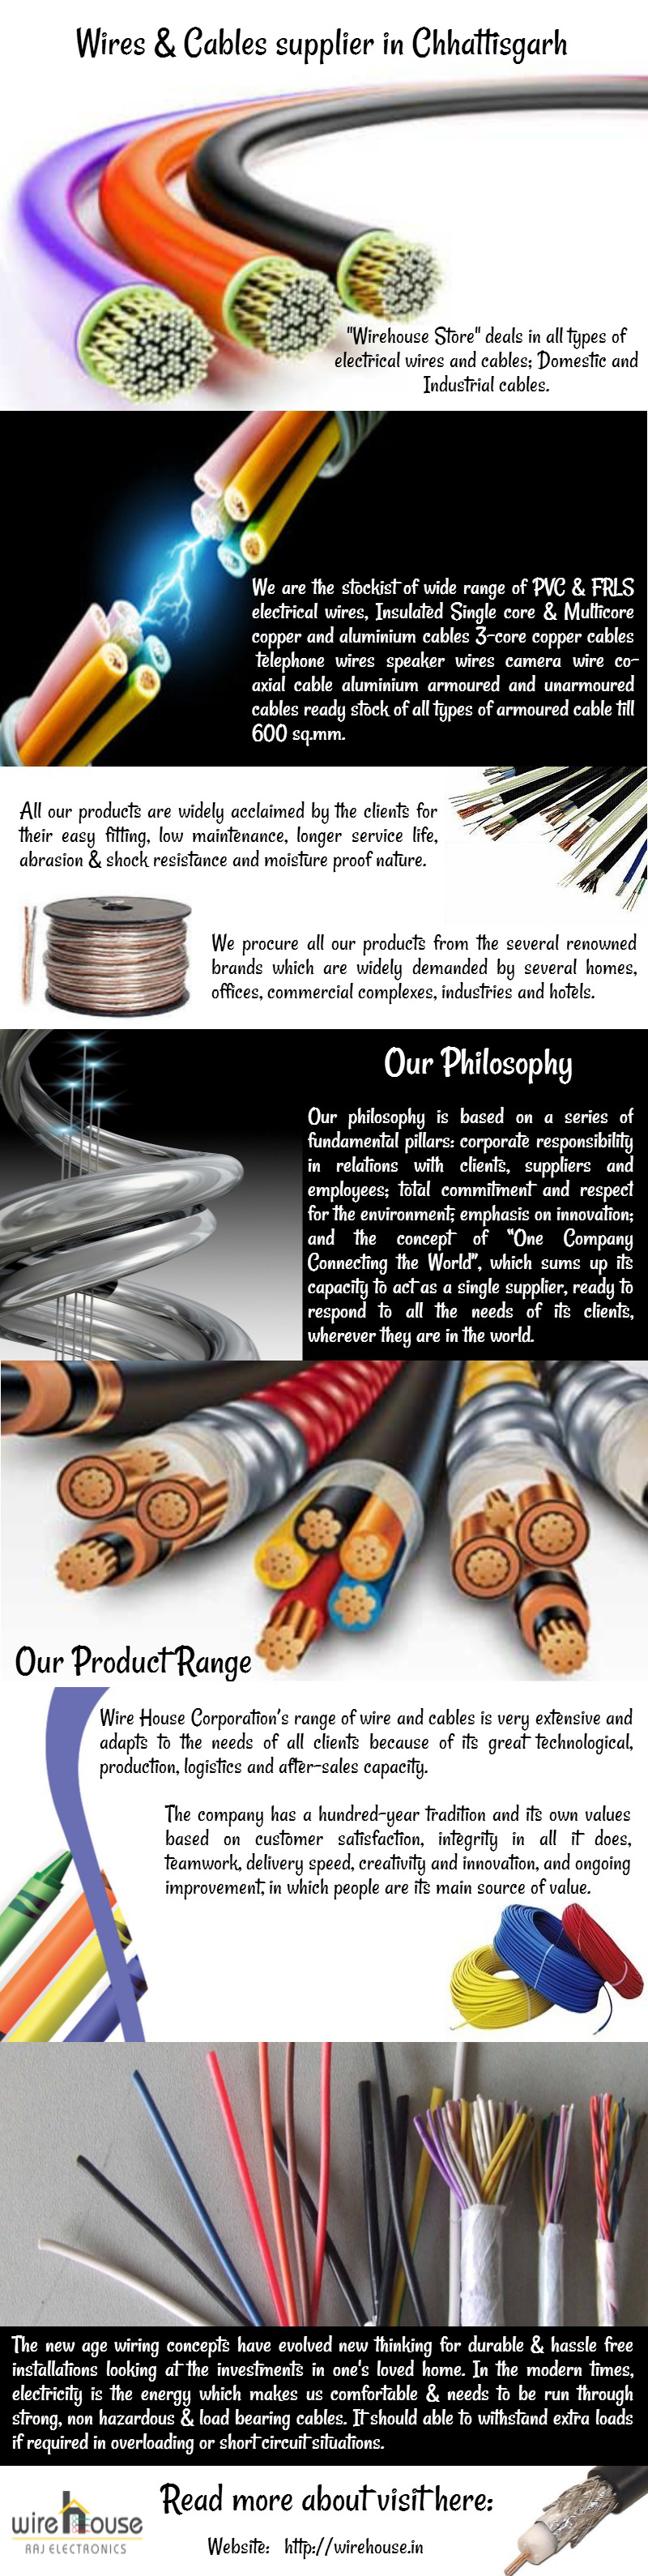 Wirehouse Store deals in all types of electrical wires and cables ...